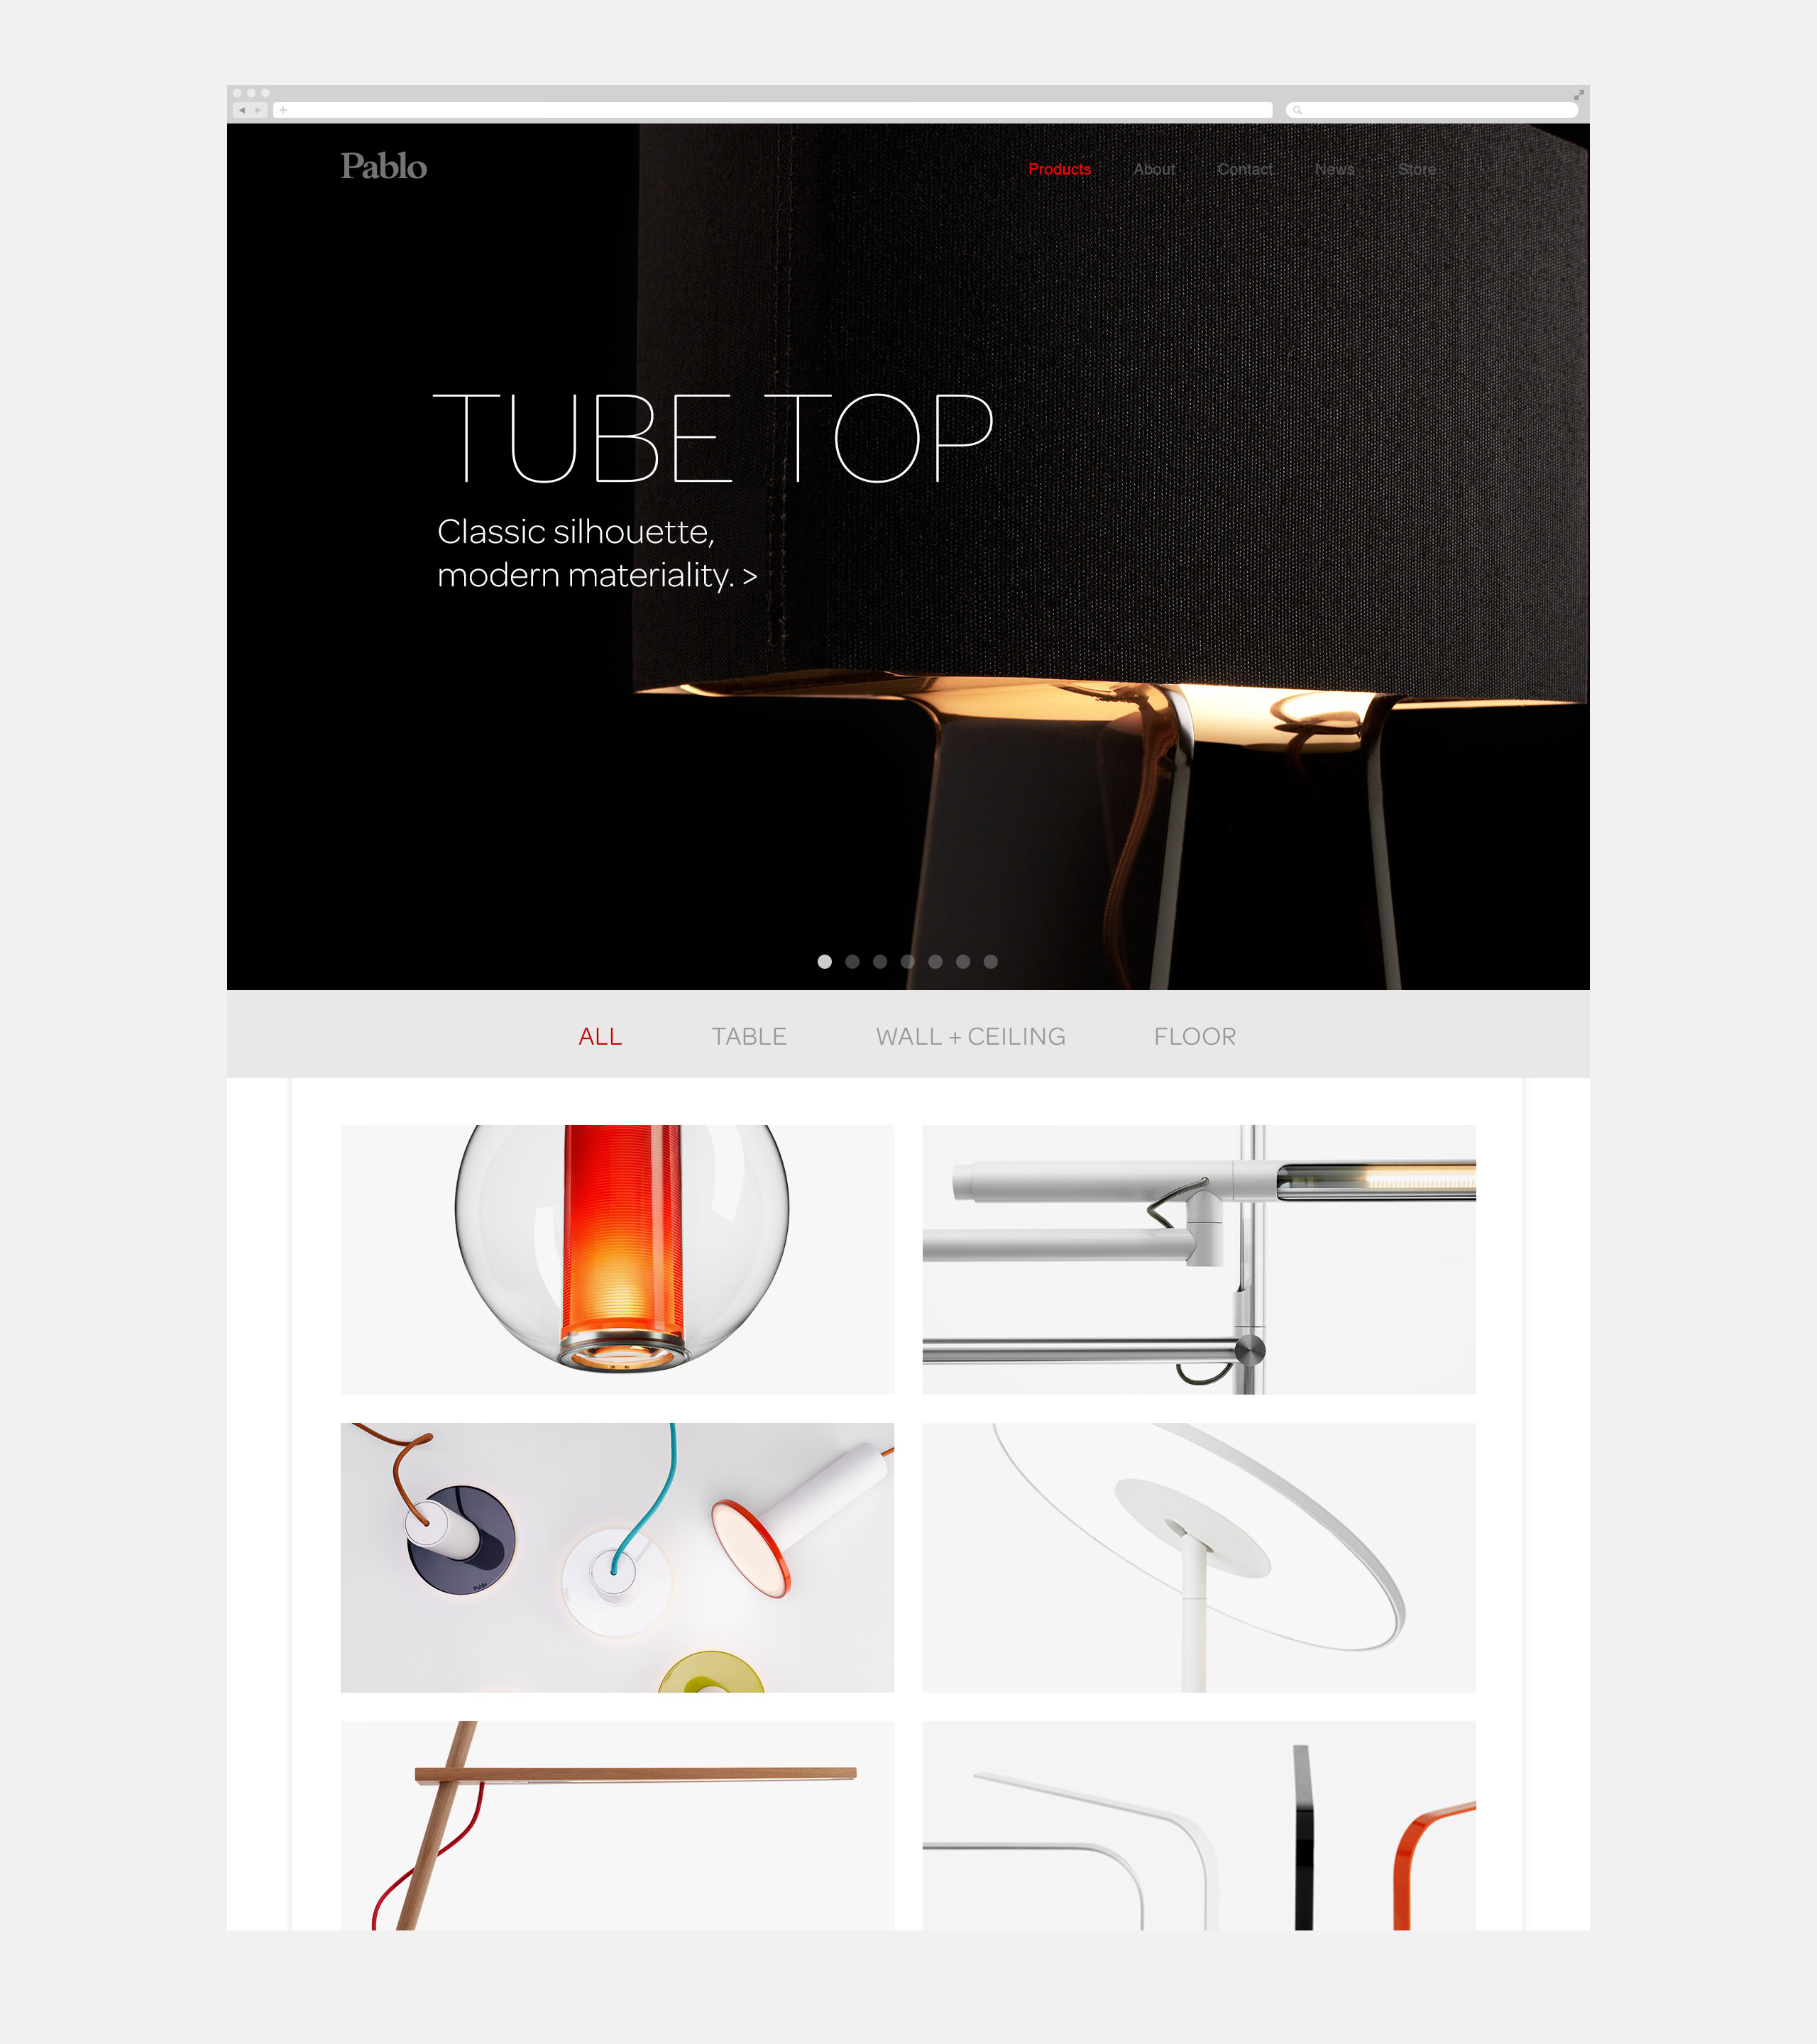 Pablo Designs Website Home Page - Tubetop